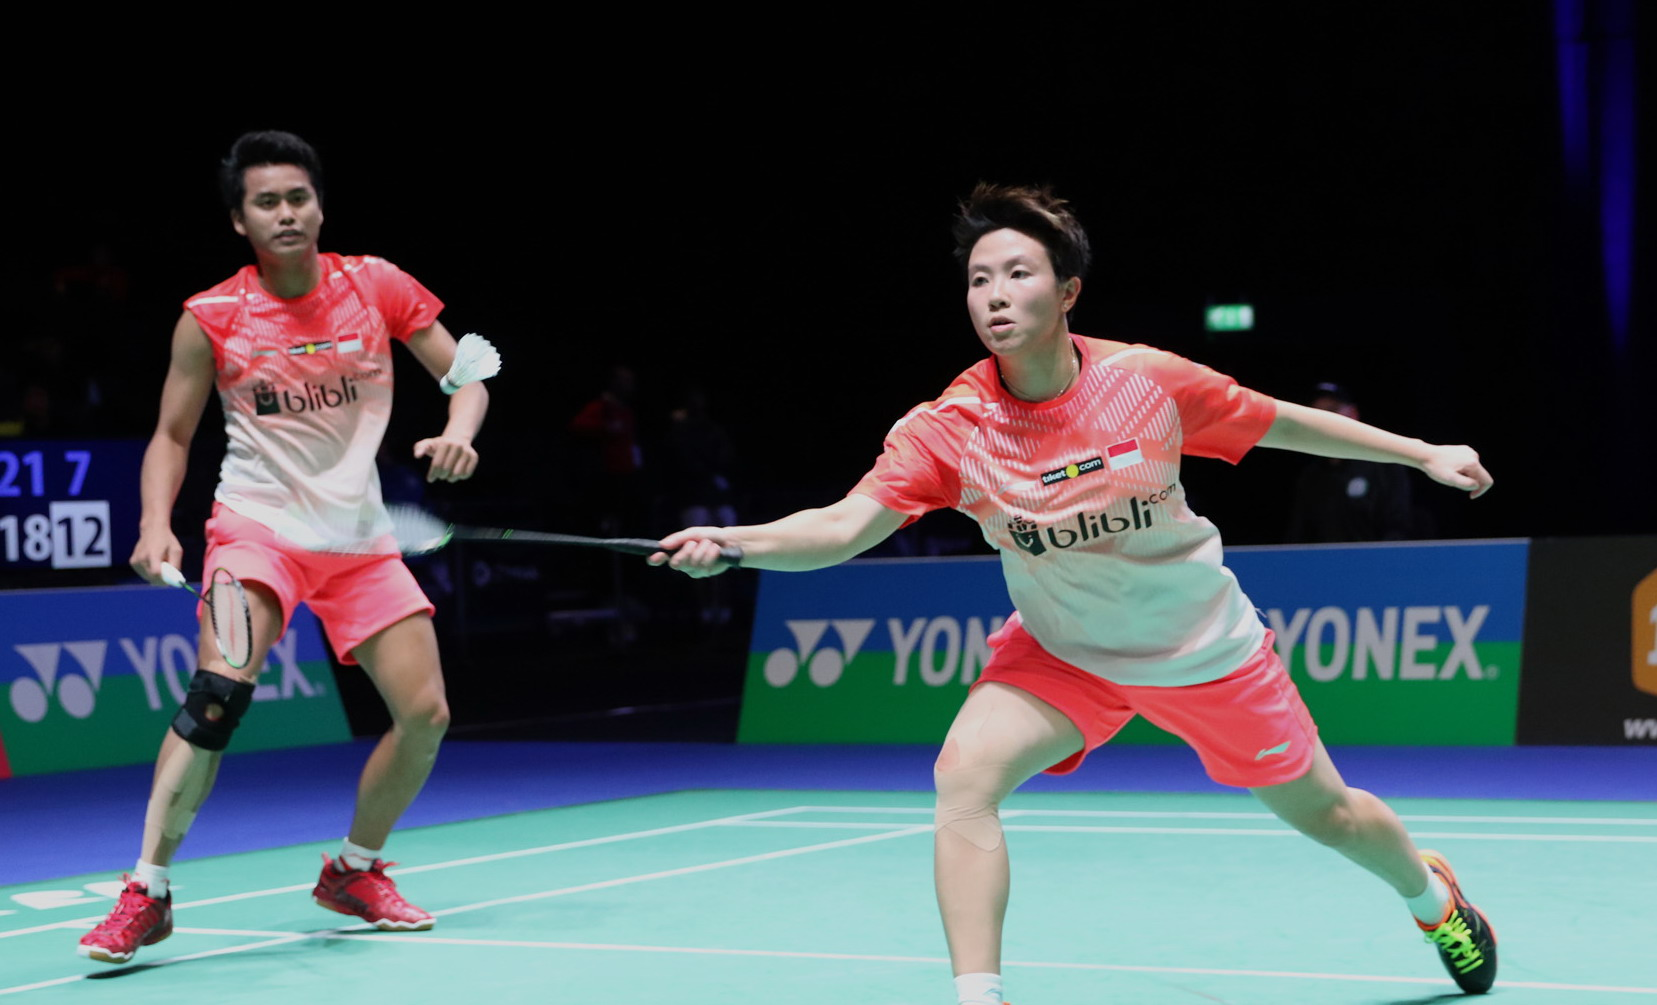 https: img.okeinfo.net content 2018 07 07 40 1919401 jadwal-final-indonesia-open-2018-LfgSEDzez4.jpg